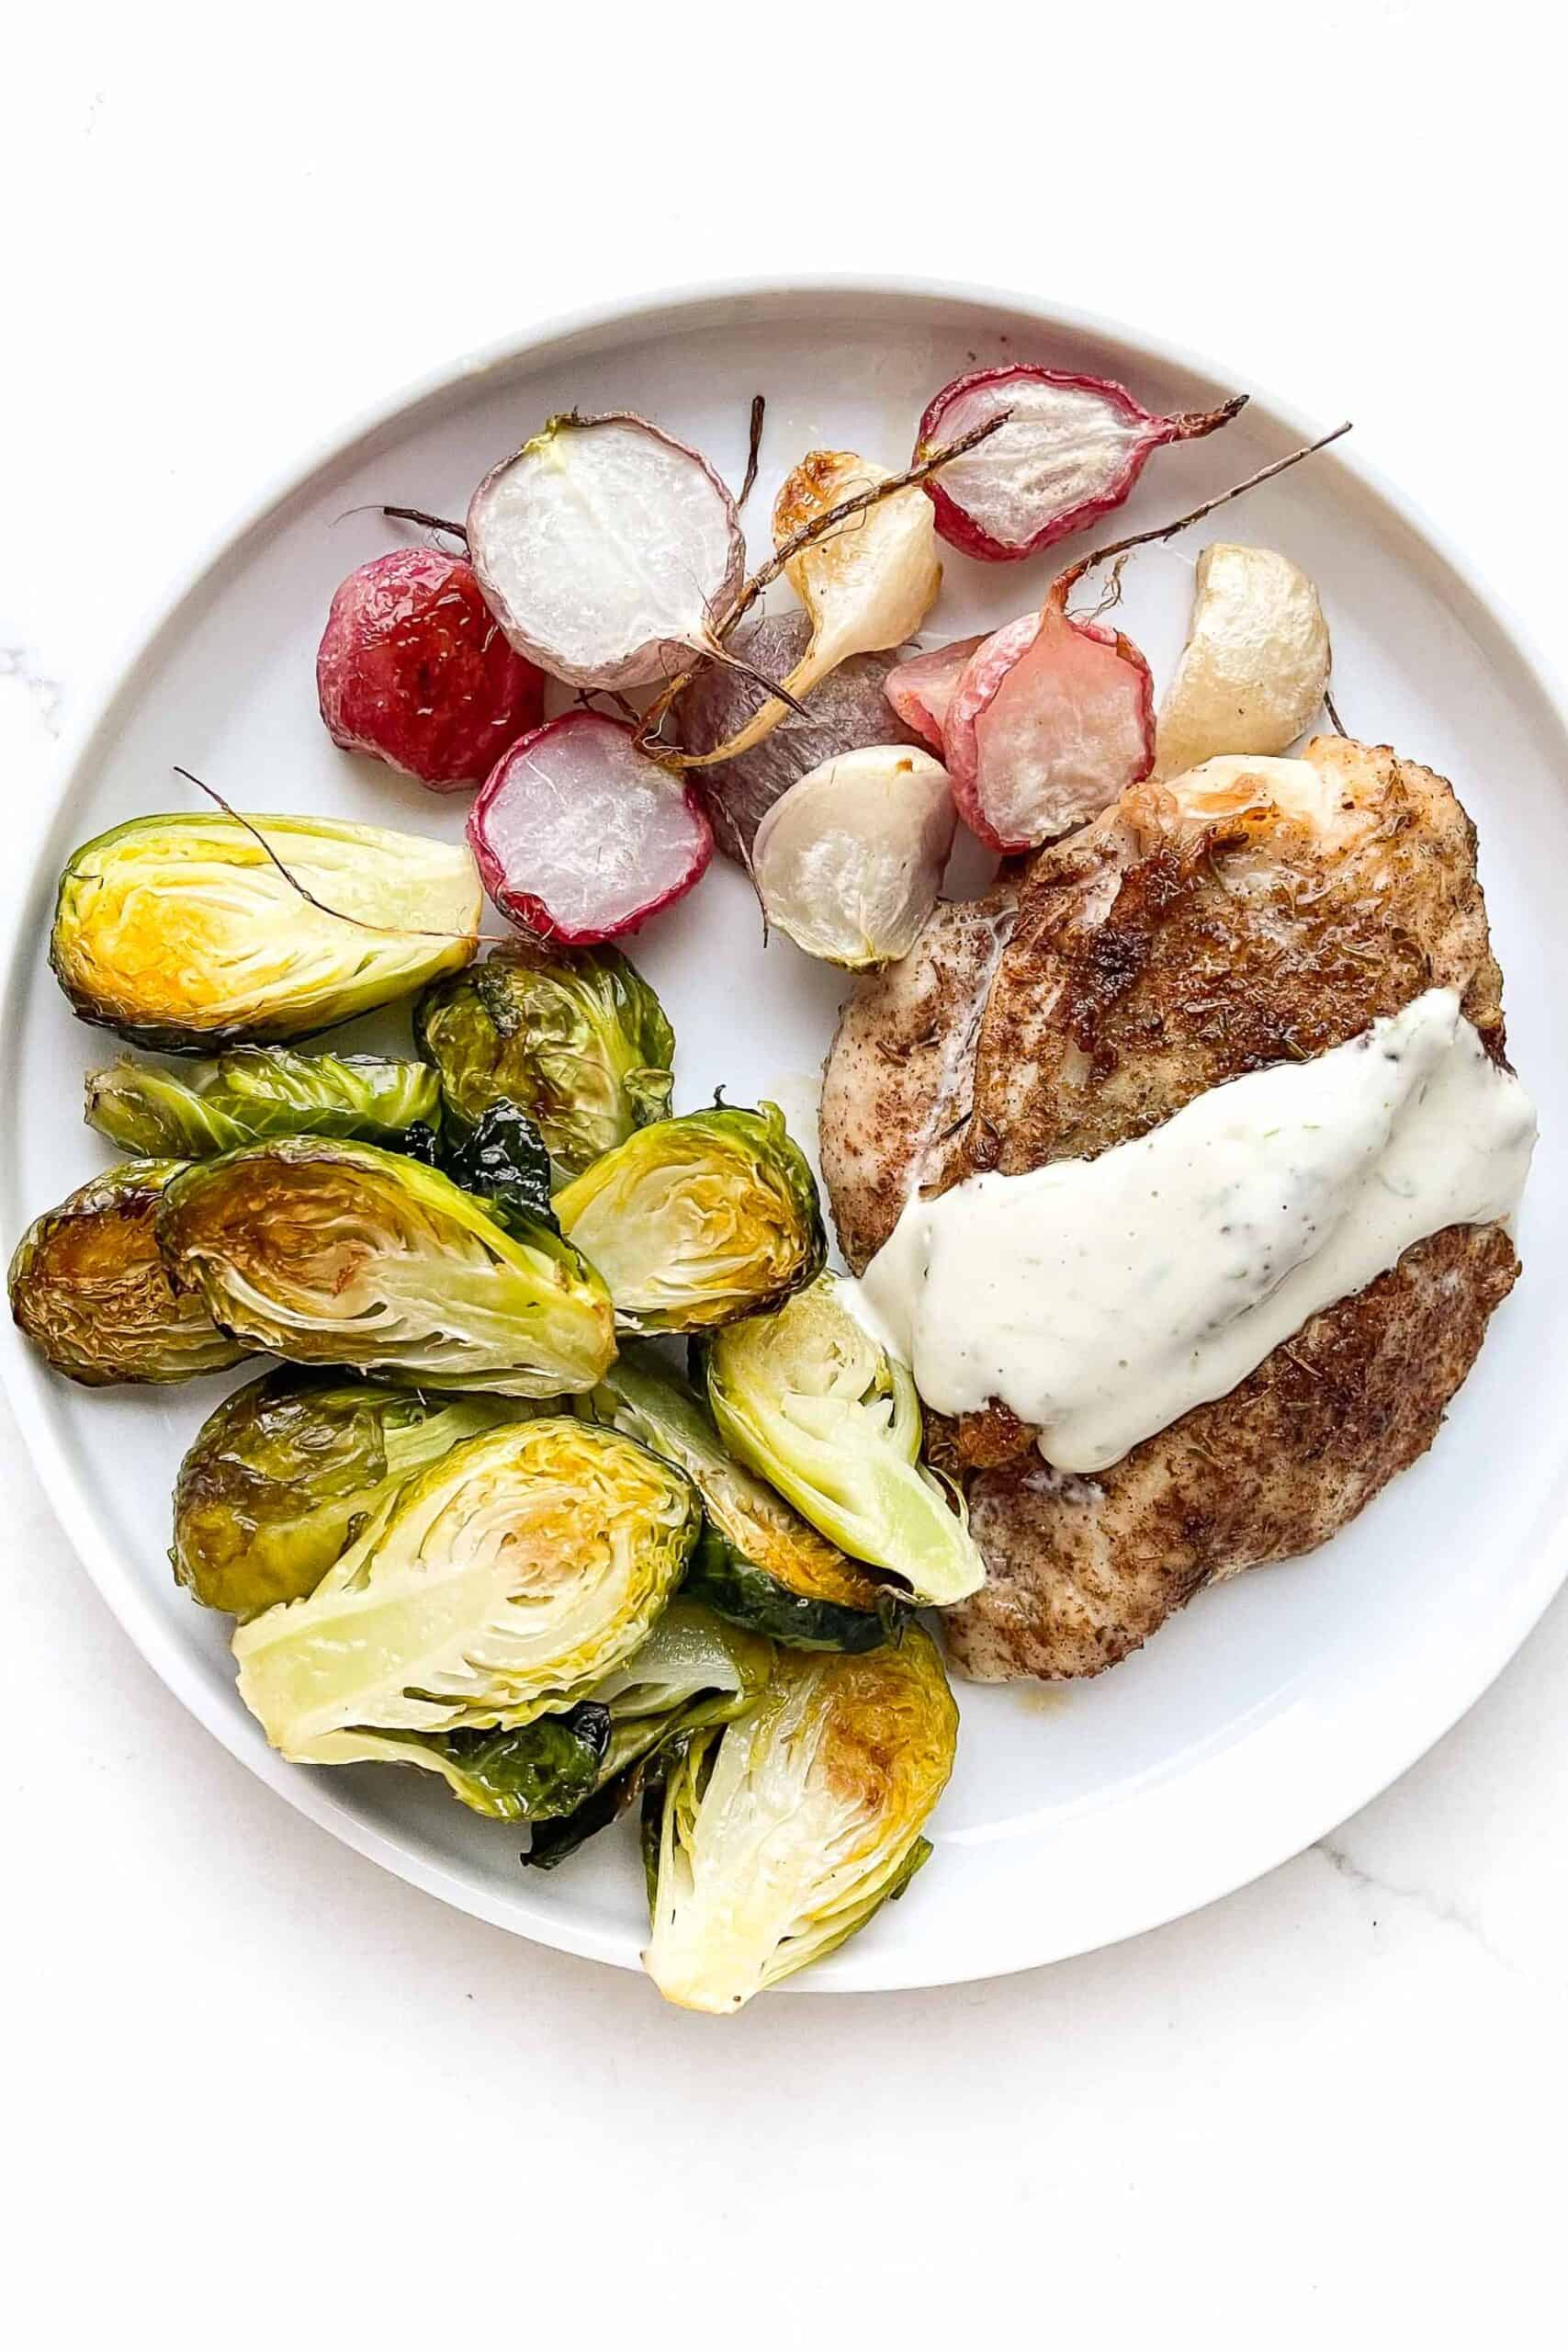 Jerk seasoned chicken breast topped with garlic lime aioli, roasted brussels sprouts + roasted radishes on a white plate and background